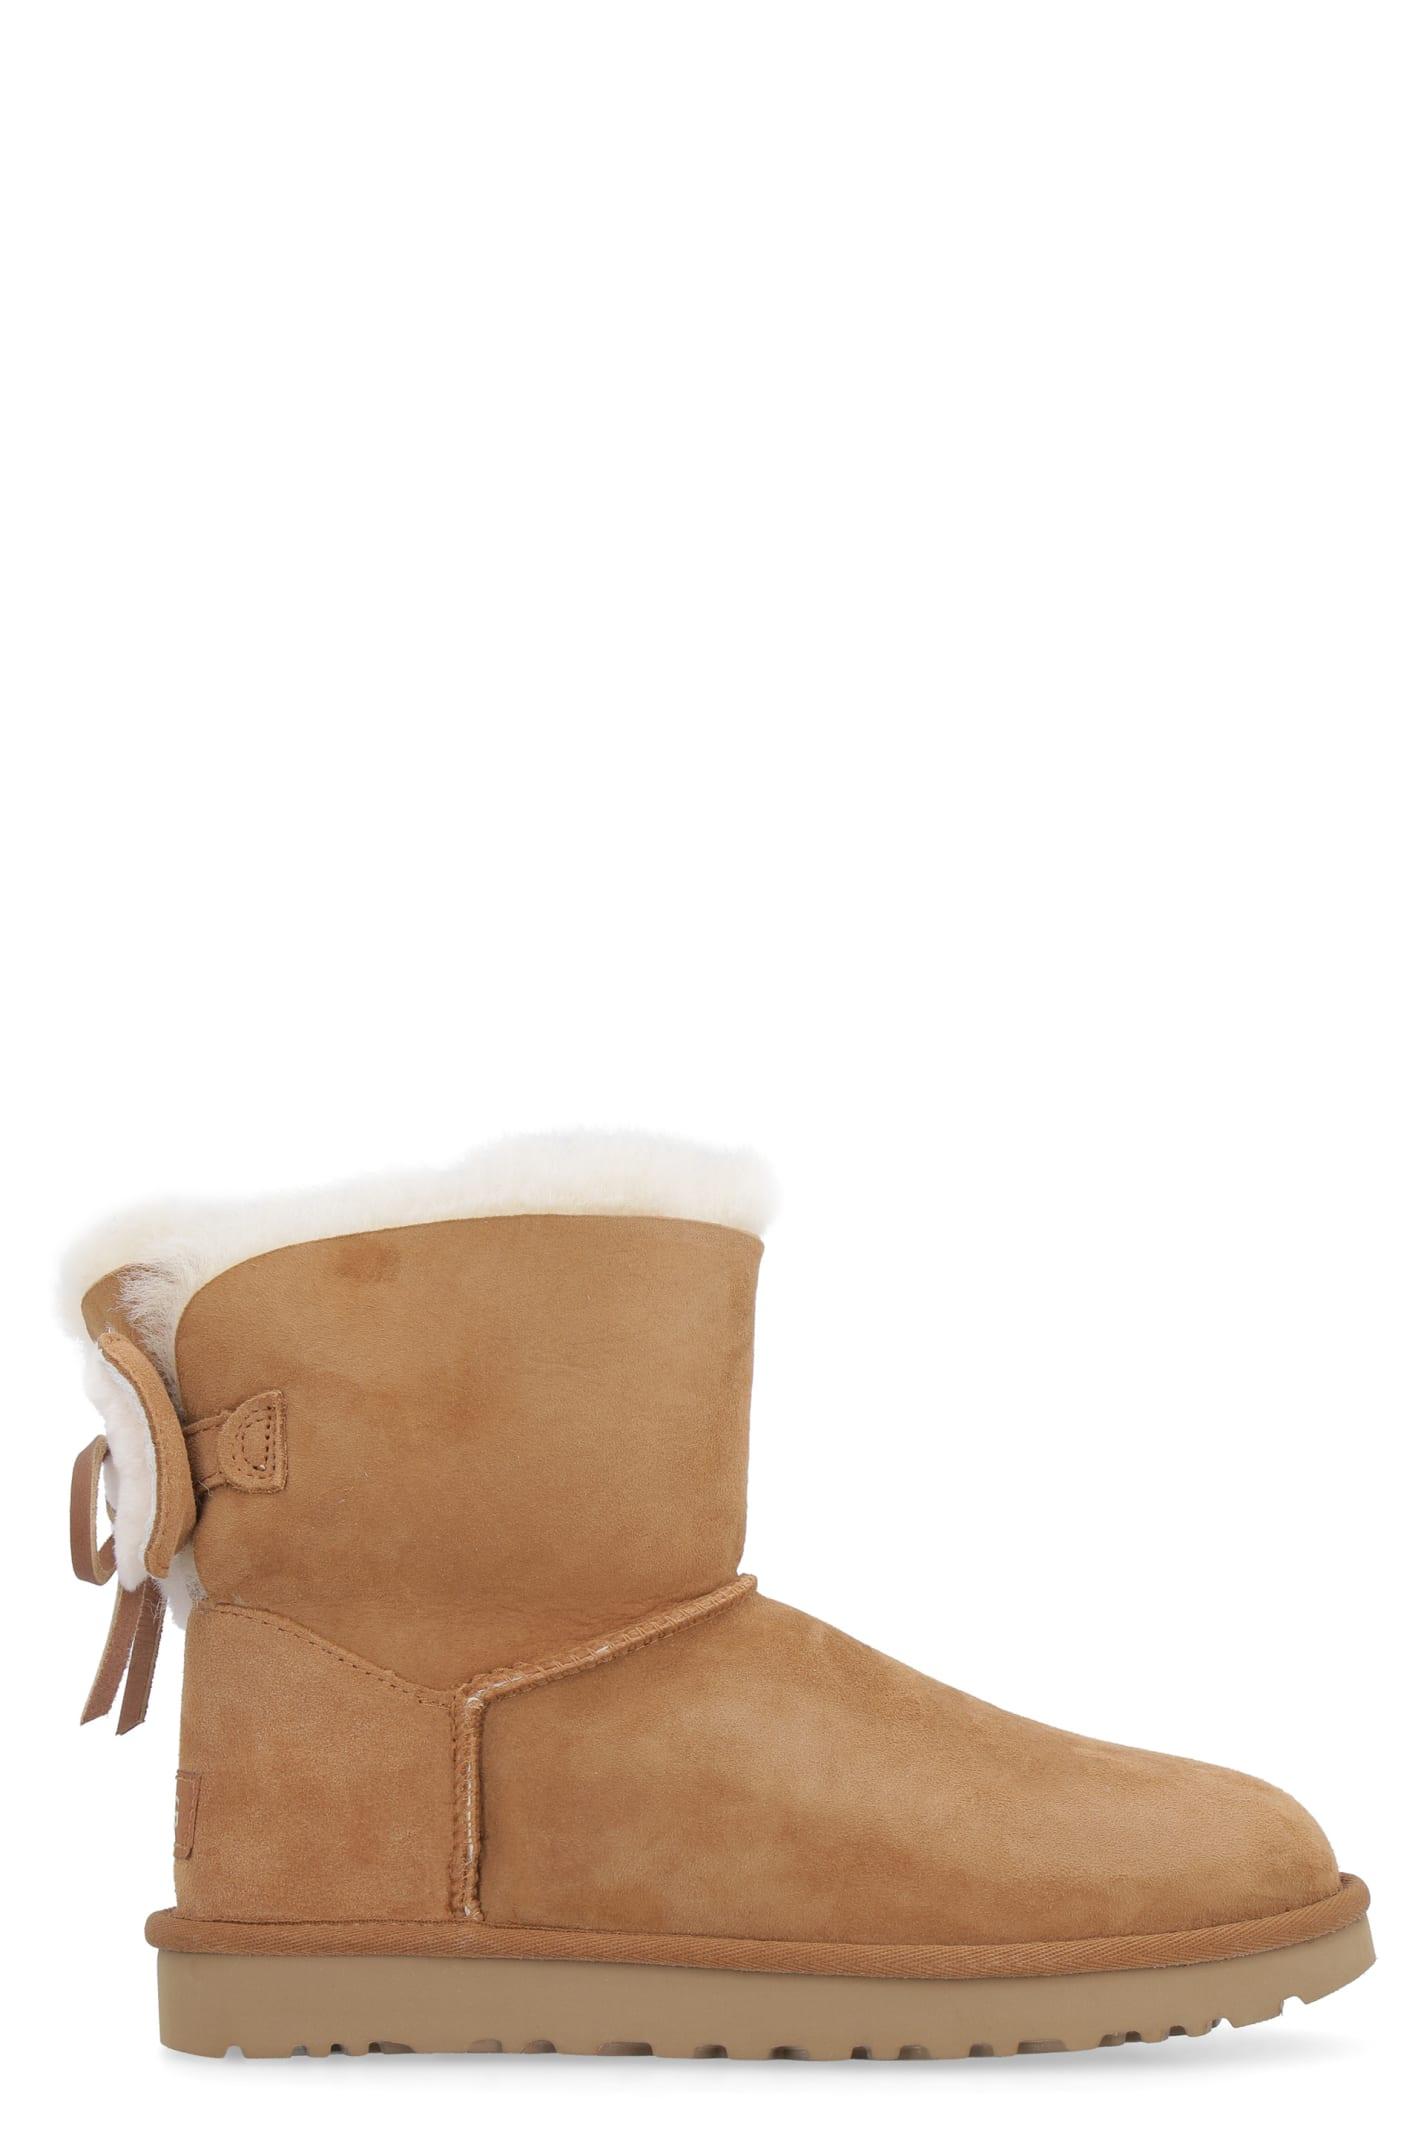 UGG Classic Double Bow Mini Suede Ankle Boots